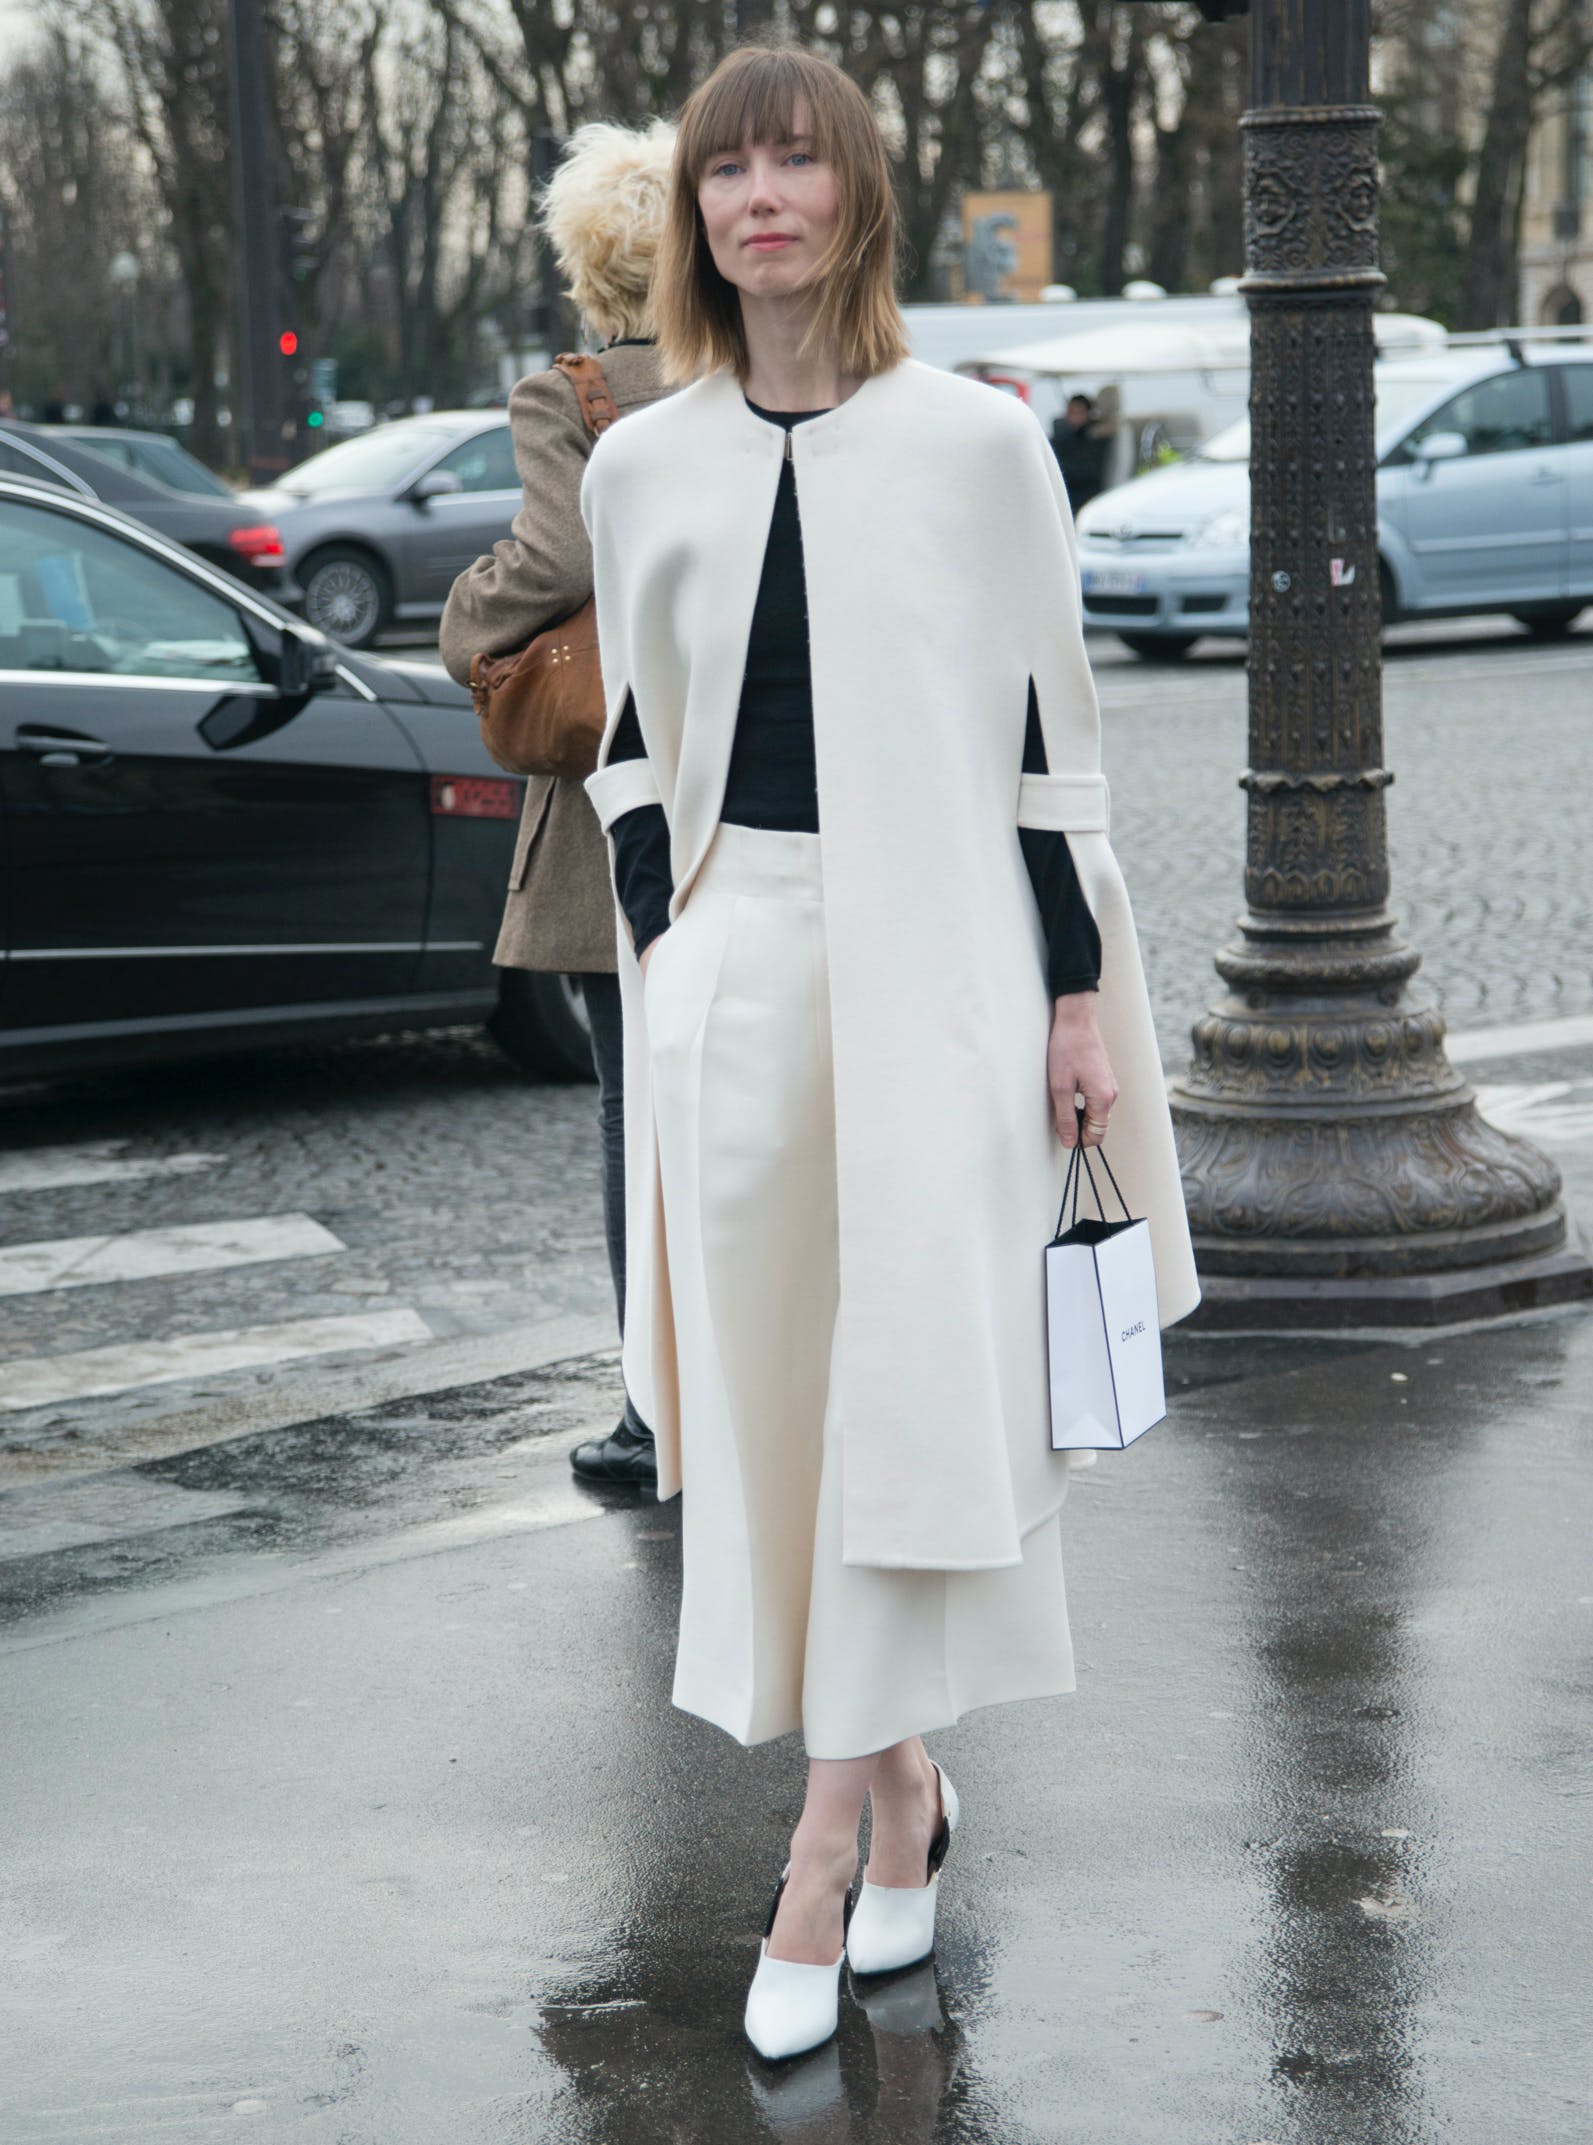 woman wearing a white cape and black top